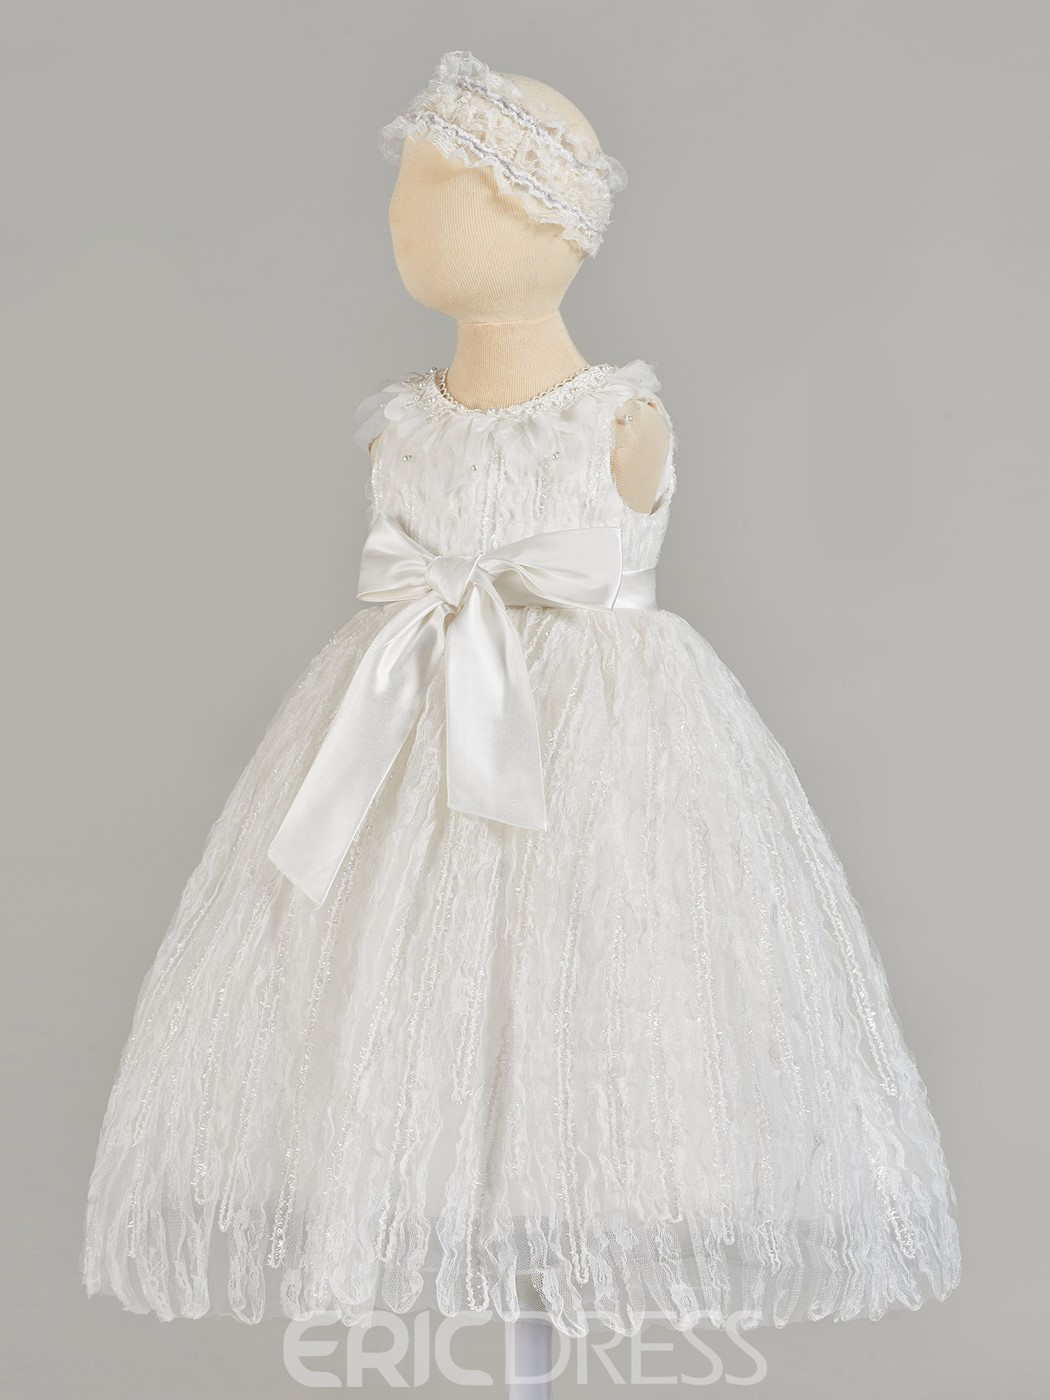 Ericdress A-Line Lace Baby Girl's Christening Gown